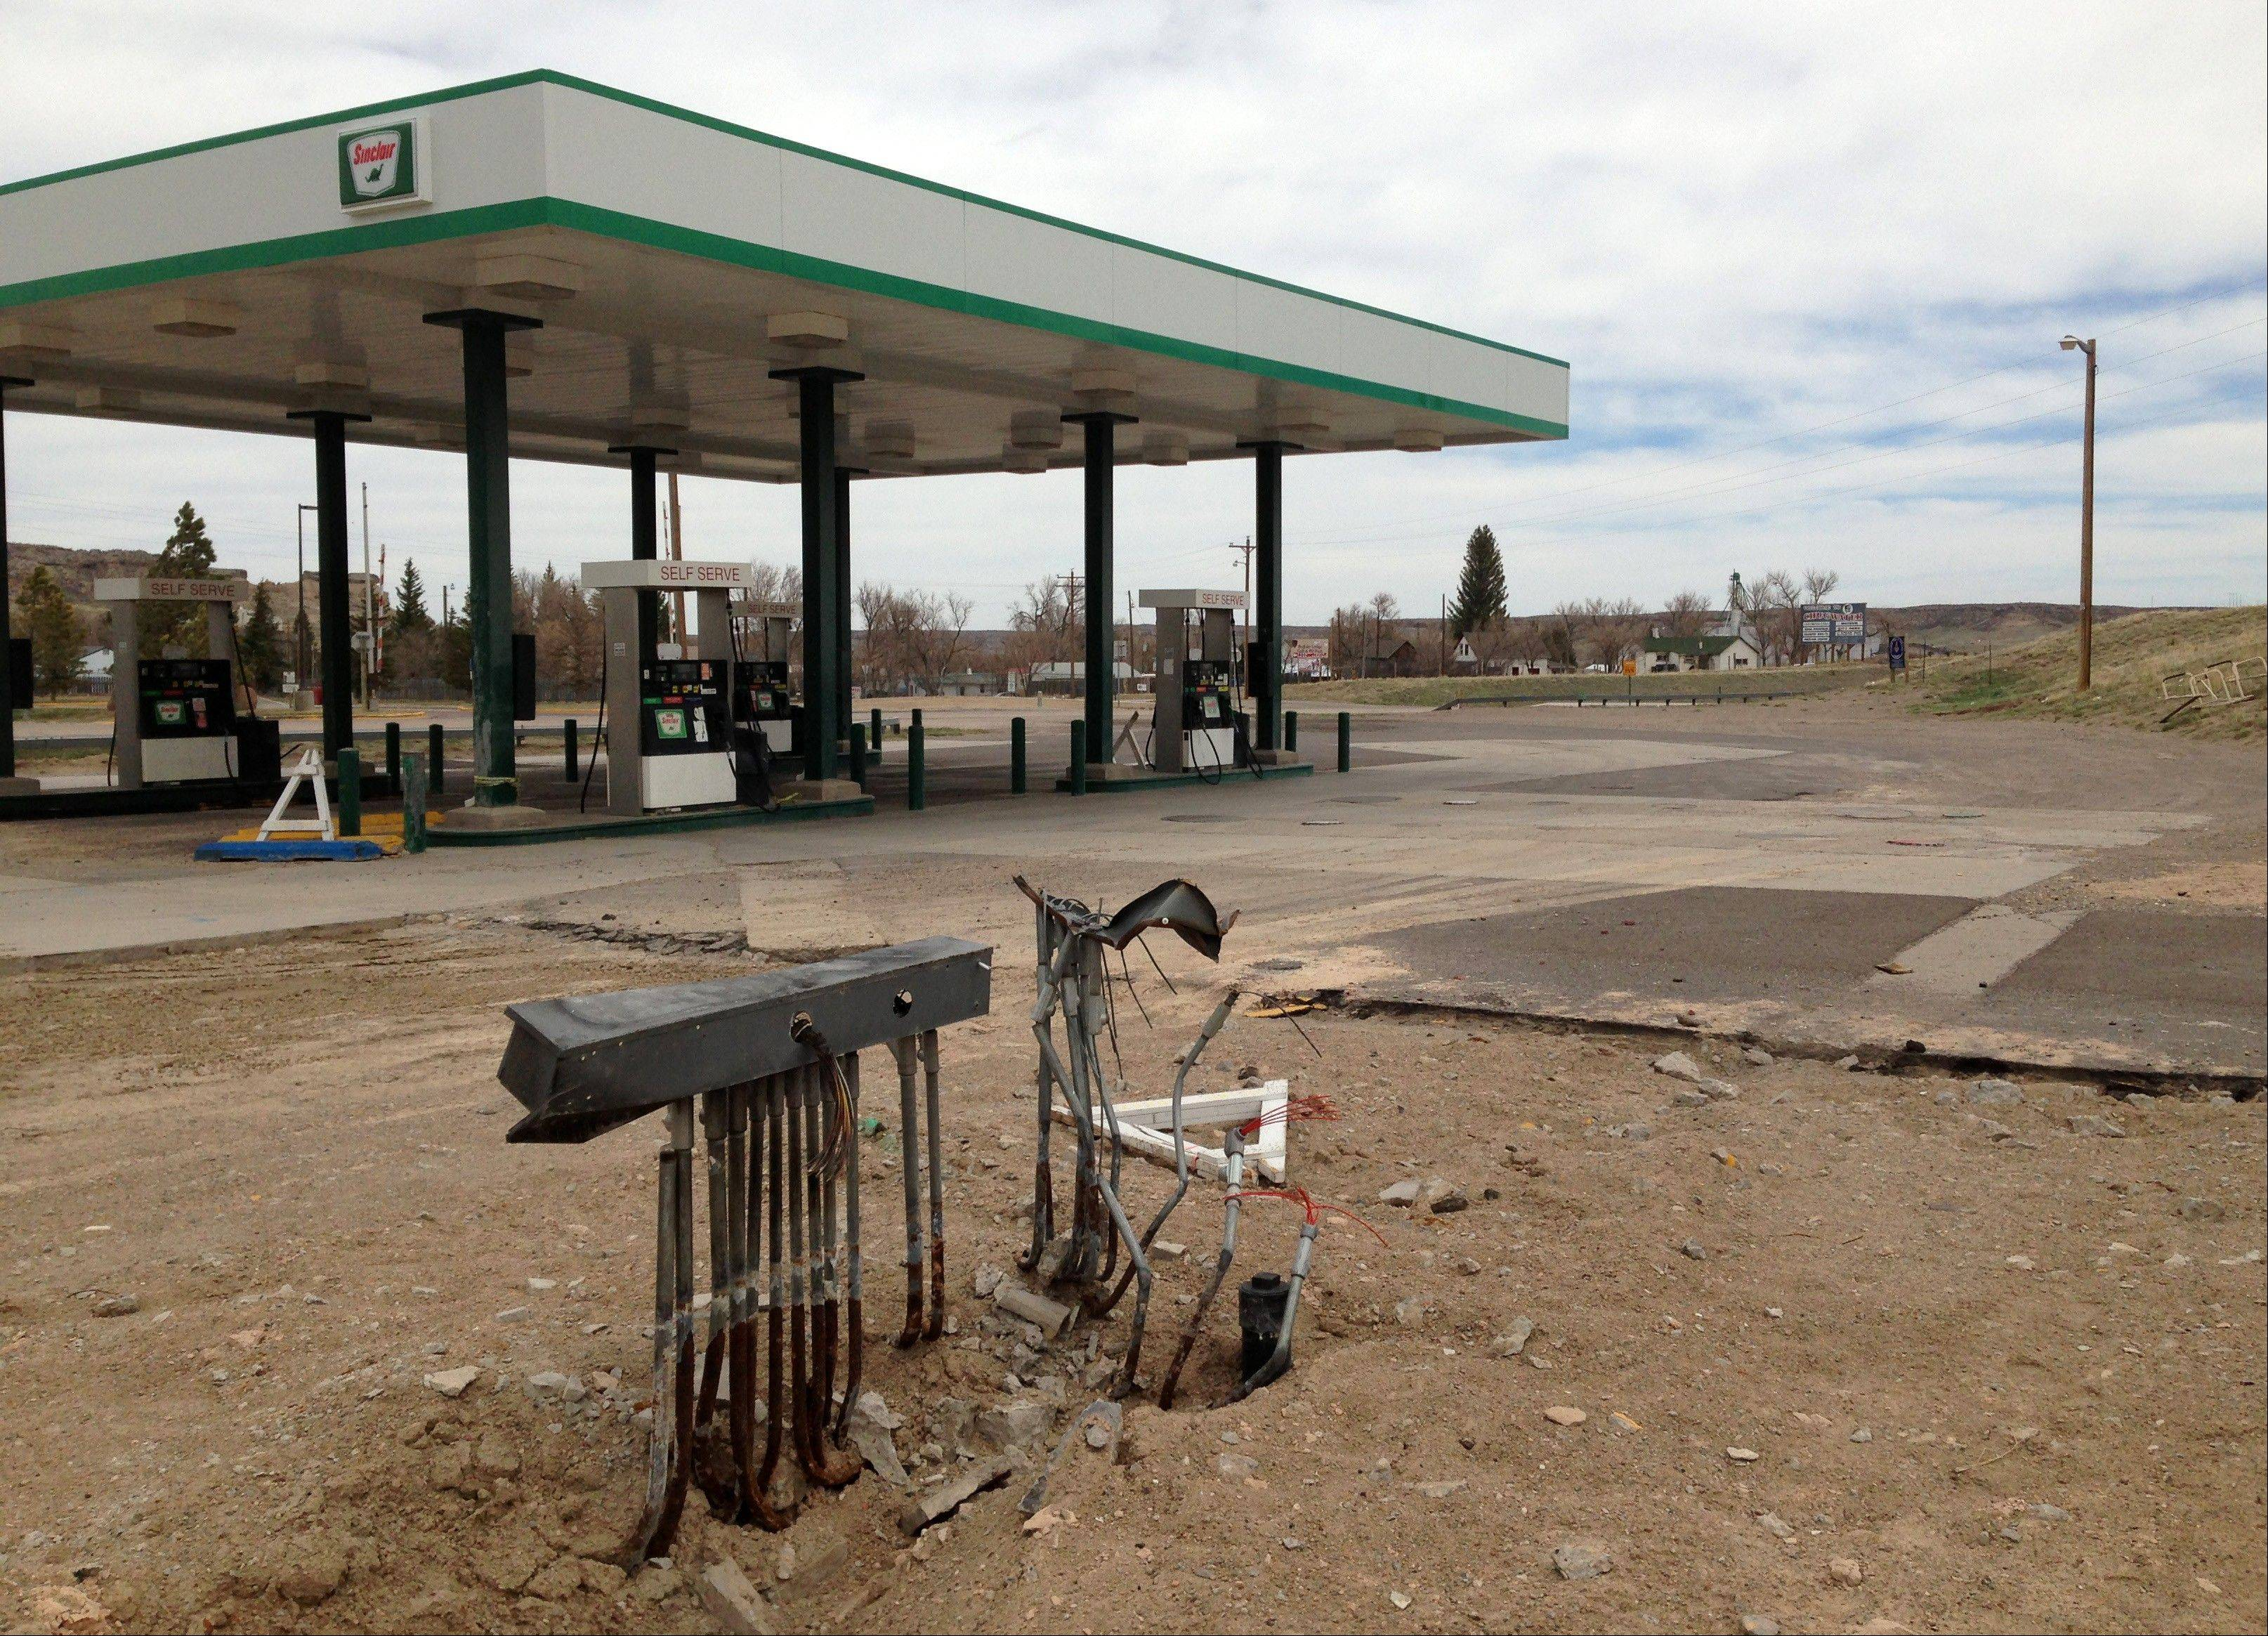 All that remains of the Horton�s Corner convenience store, foreground in Chugwater, Wyo., after a Dec. 30, 2012 fire caused by a sport utility vehicle that crashed into the store. Horton�s Corner was the only place for miles around to get gas or groceries and may not be rebuilt for several months yet.